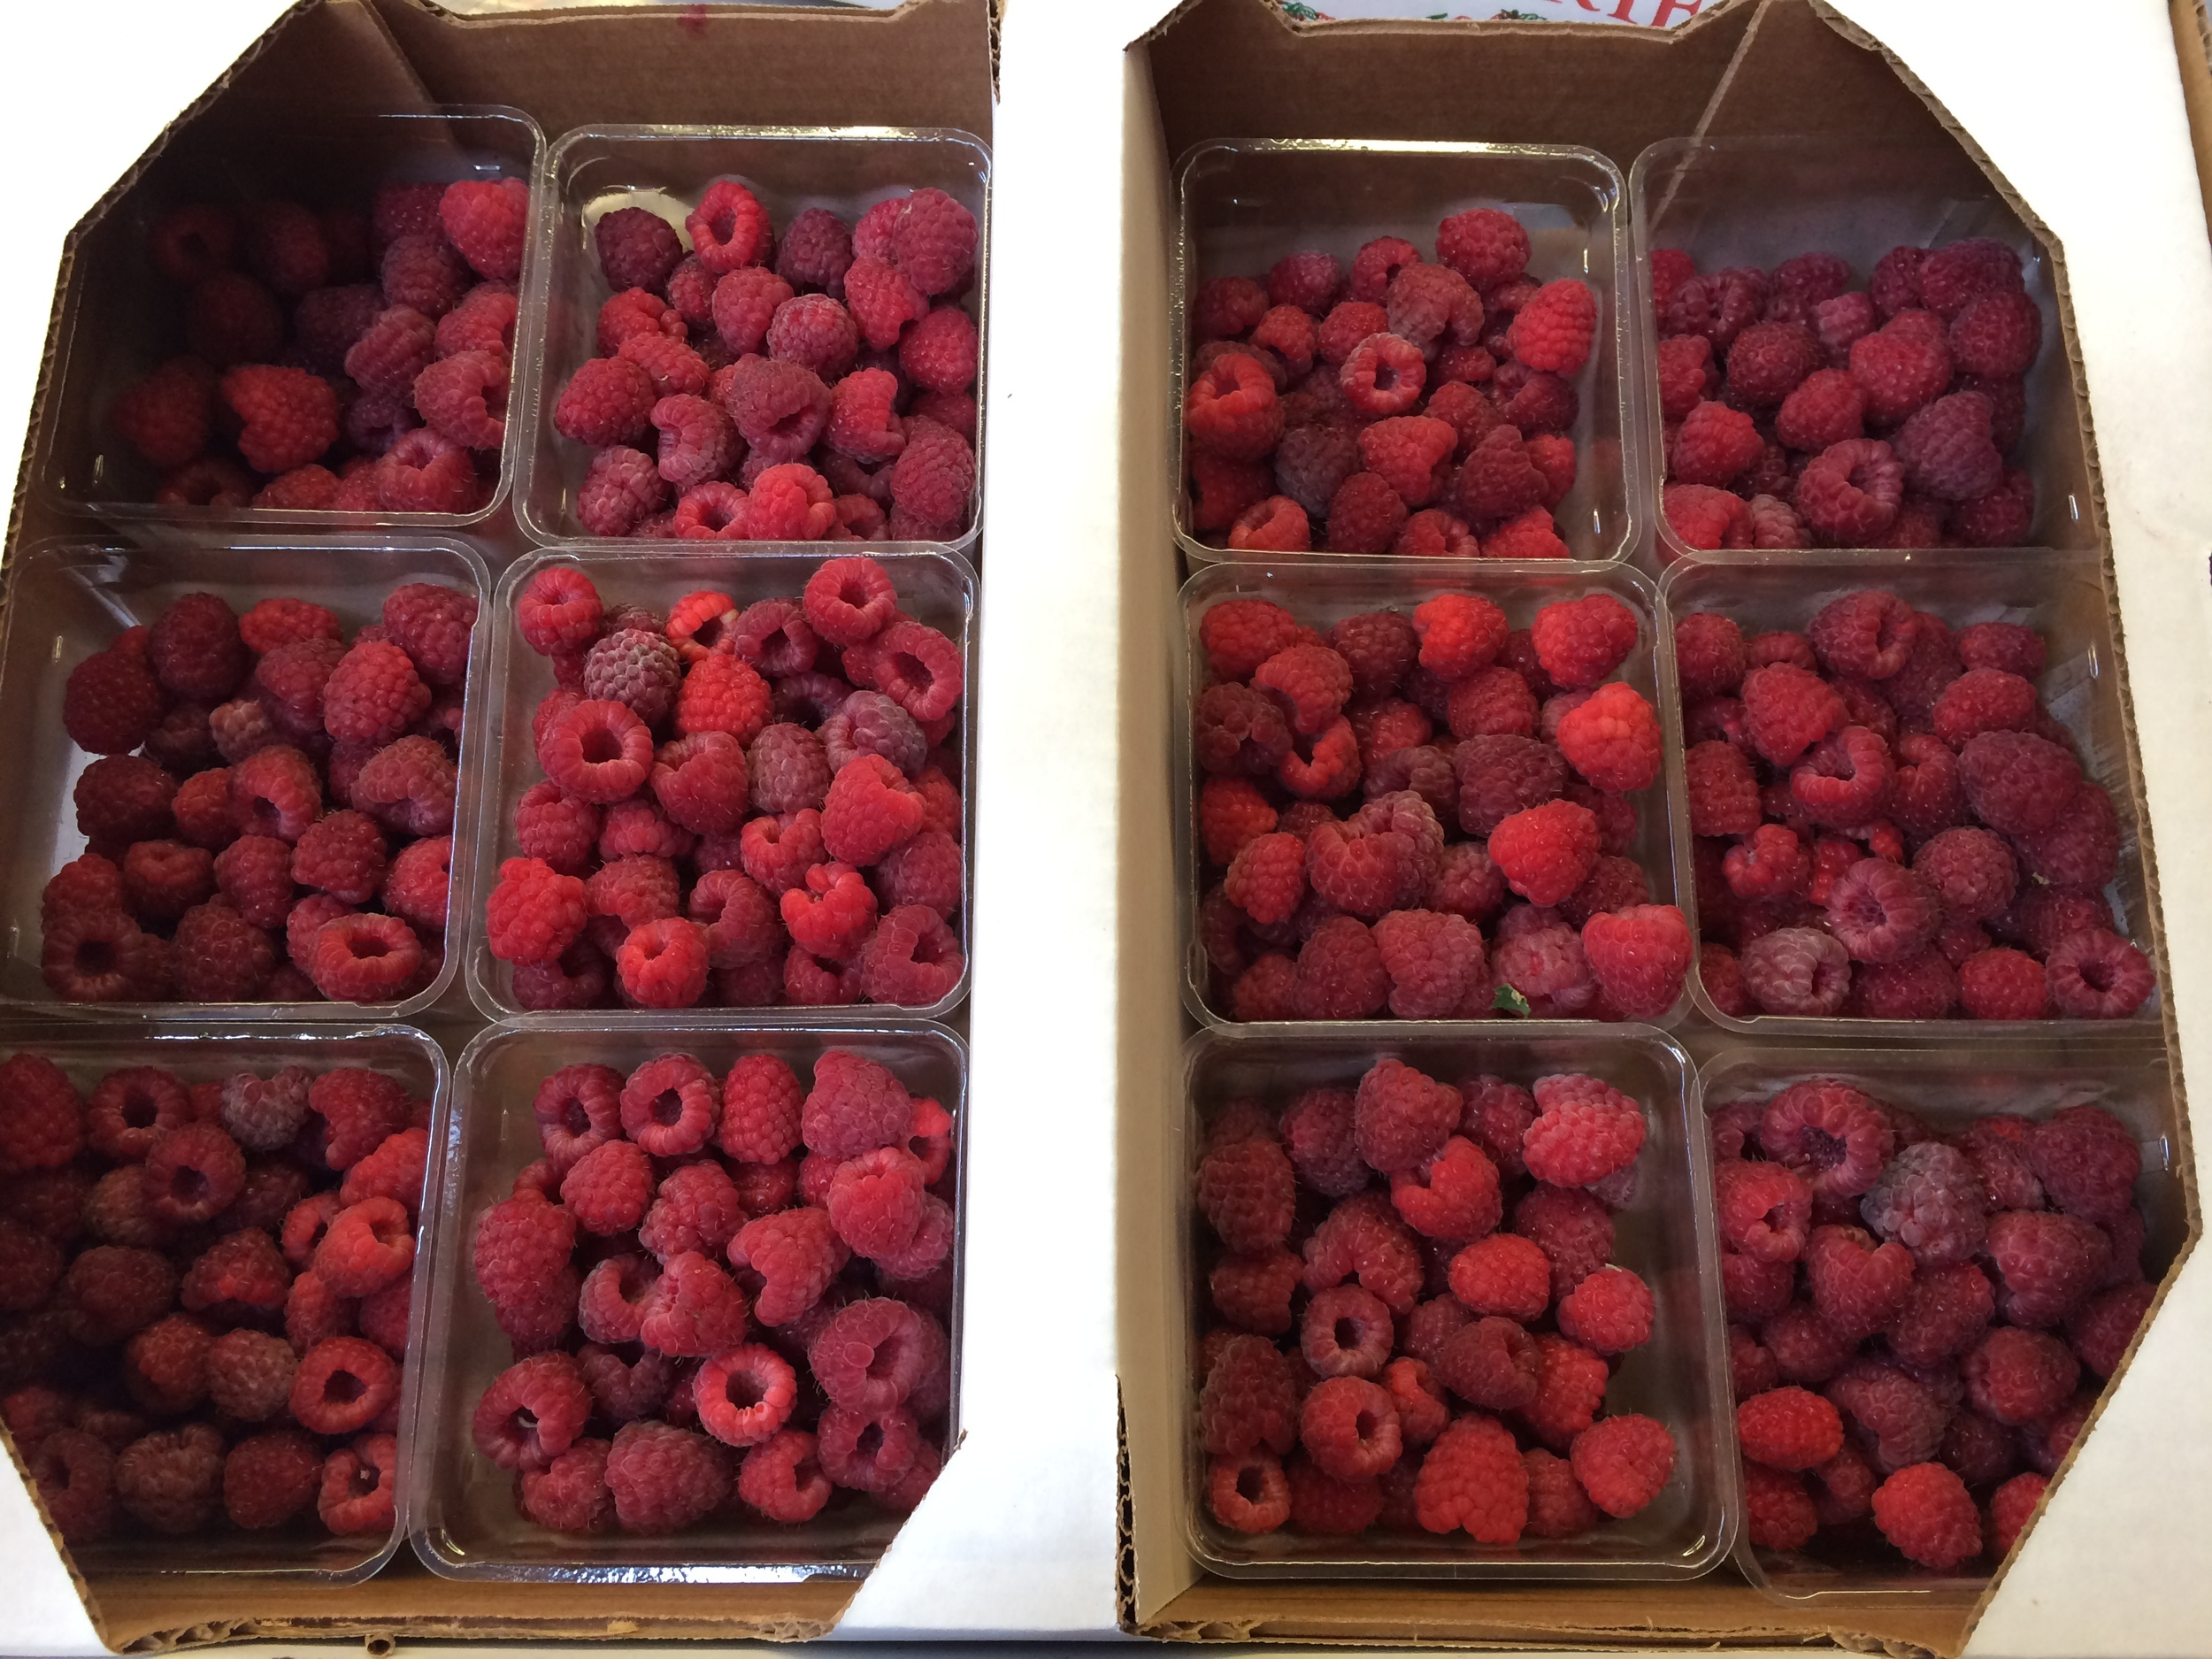 Unbelievably delicious red raspberries, freshly picked from the fields